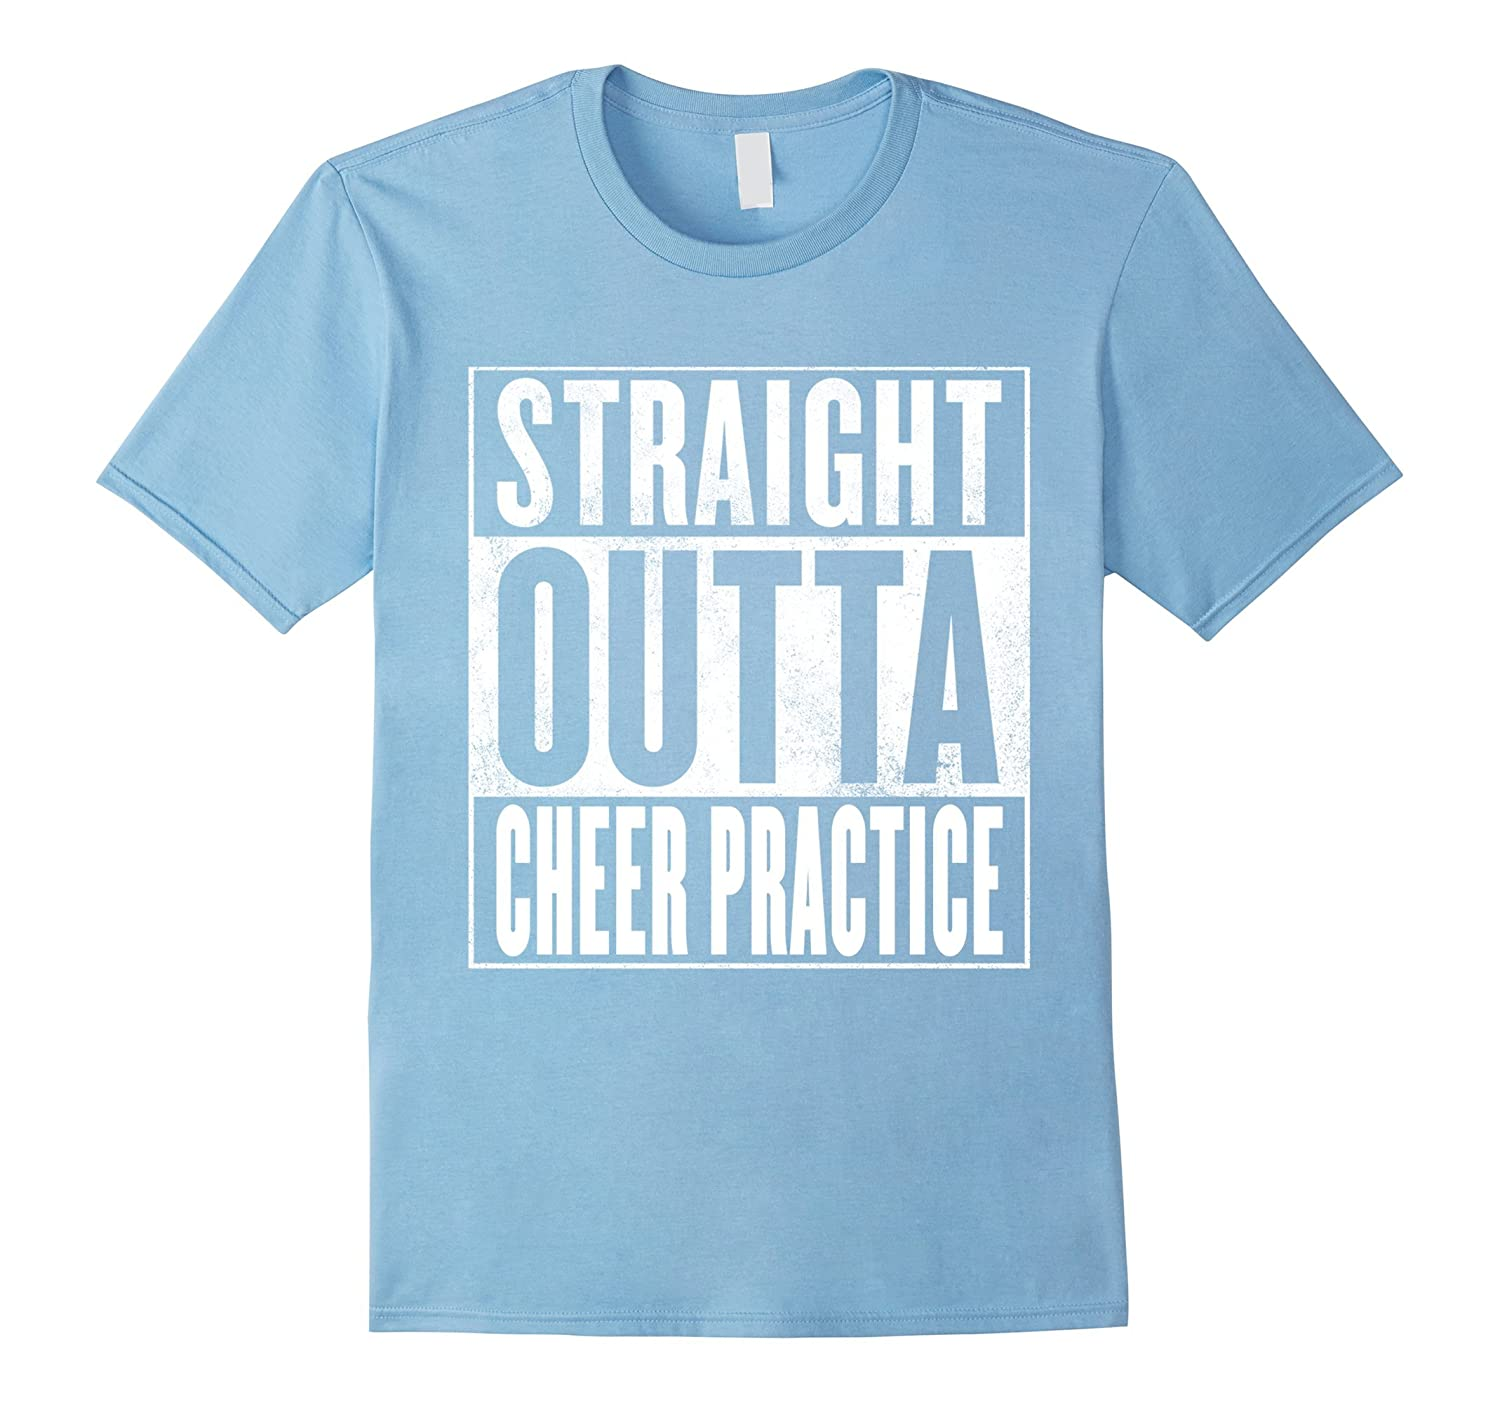 fd118d9a81 Cheer Practice T-Shirt - STRAIGHT OUTTA CHEER PRACTICE Shirt-ANZ ...